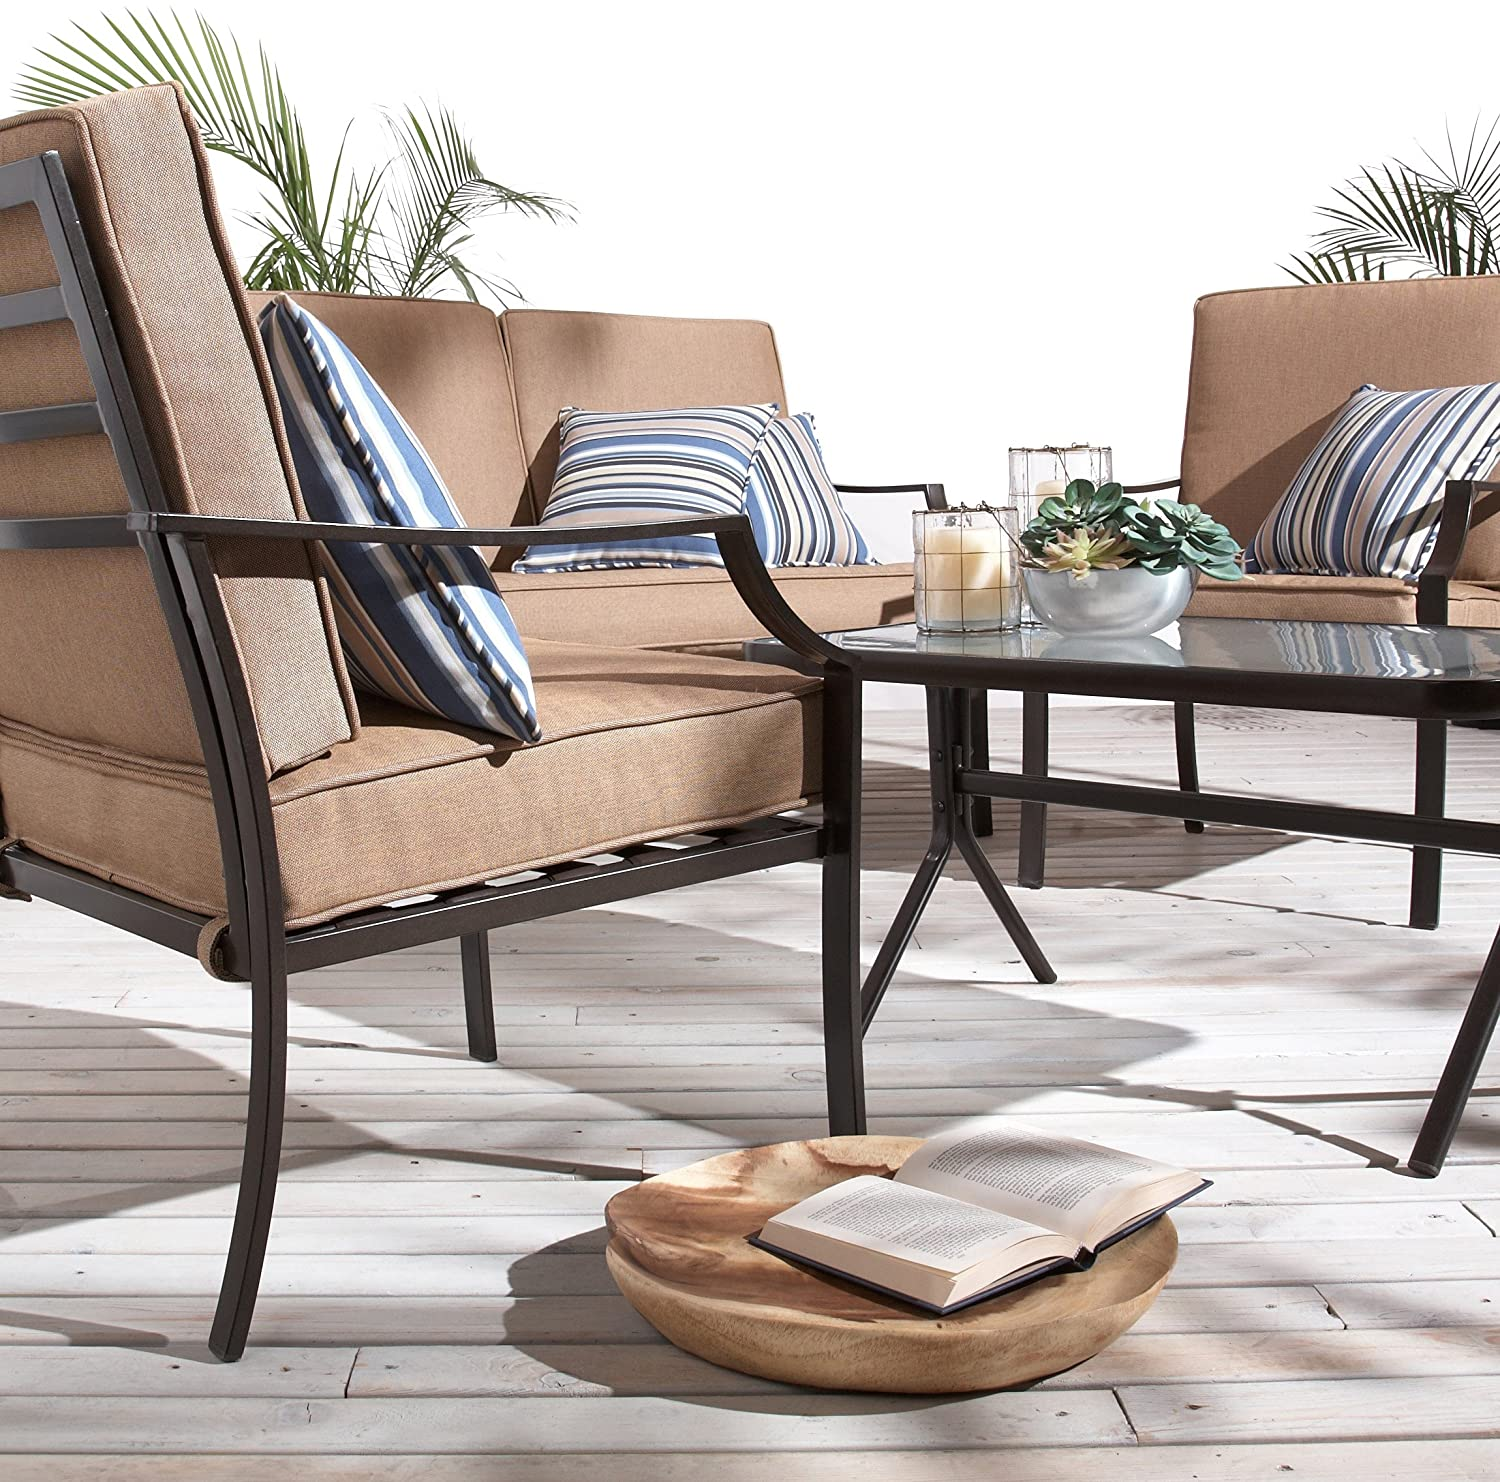 New strathwood brentwood 4 piece outdoor furniture set for Outdoor furniture 4 piece